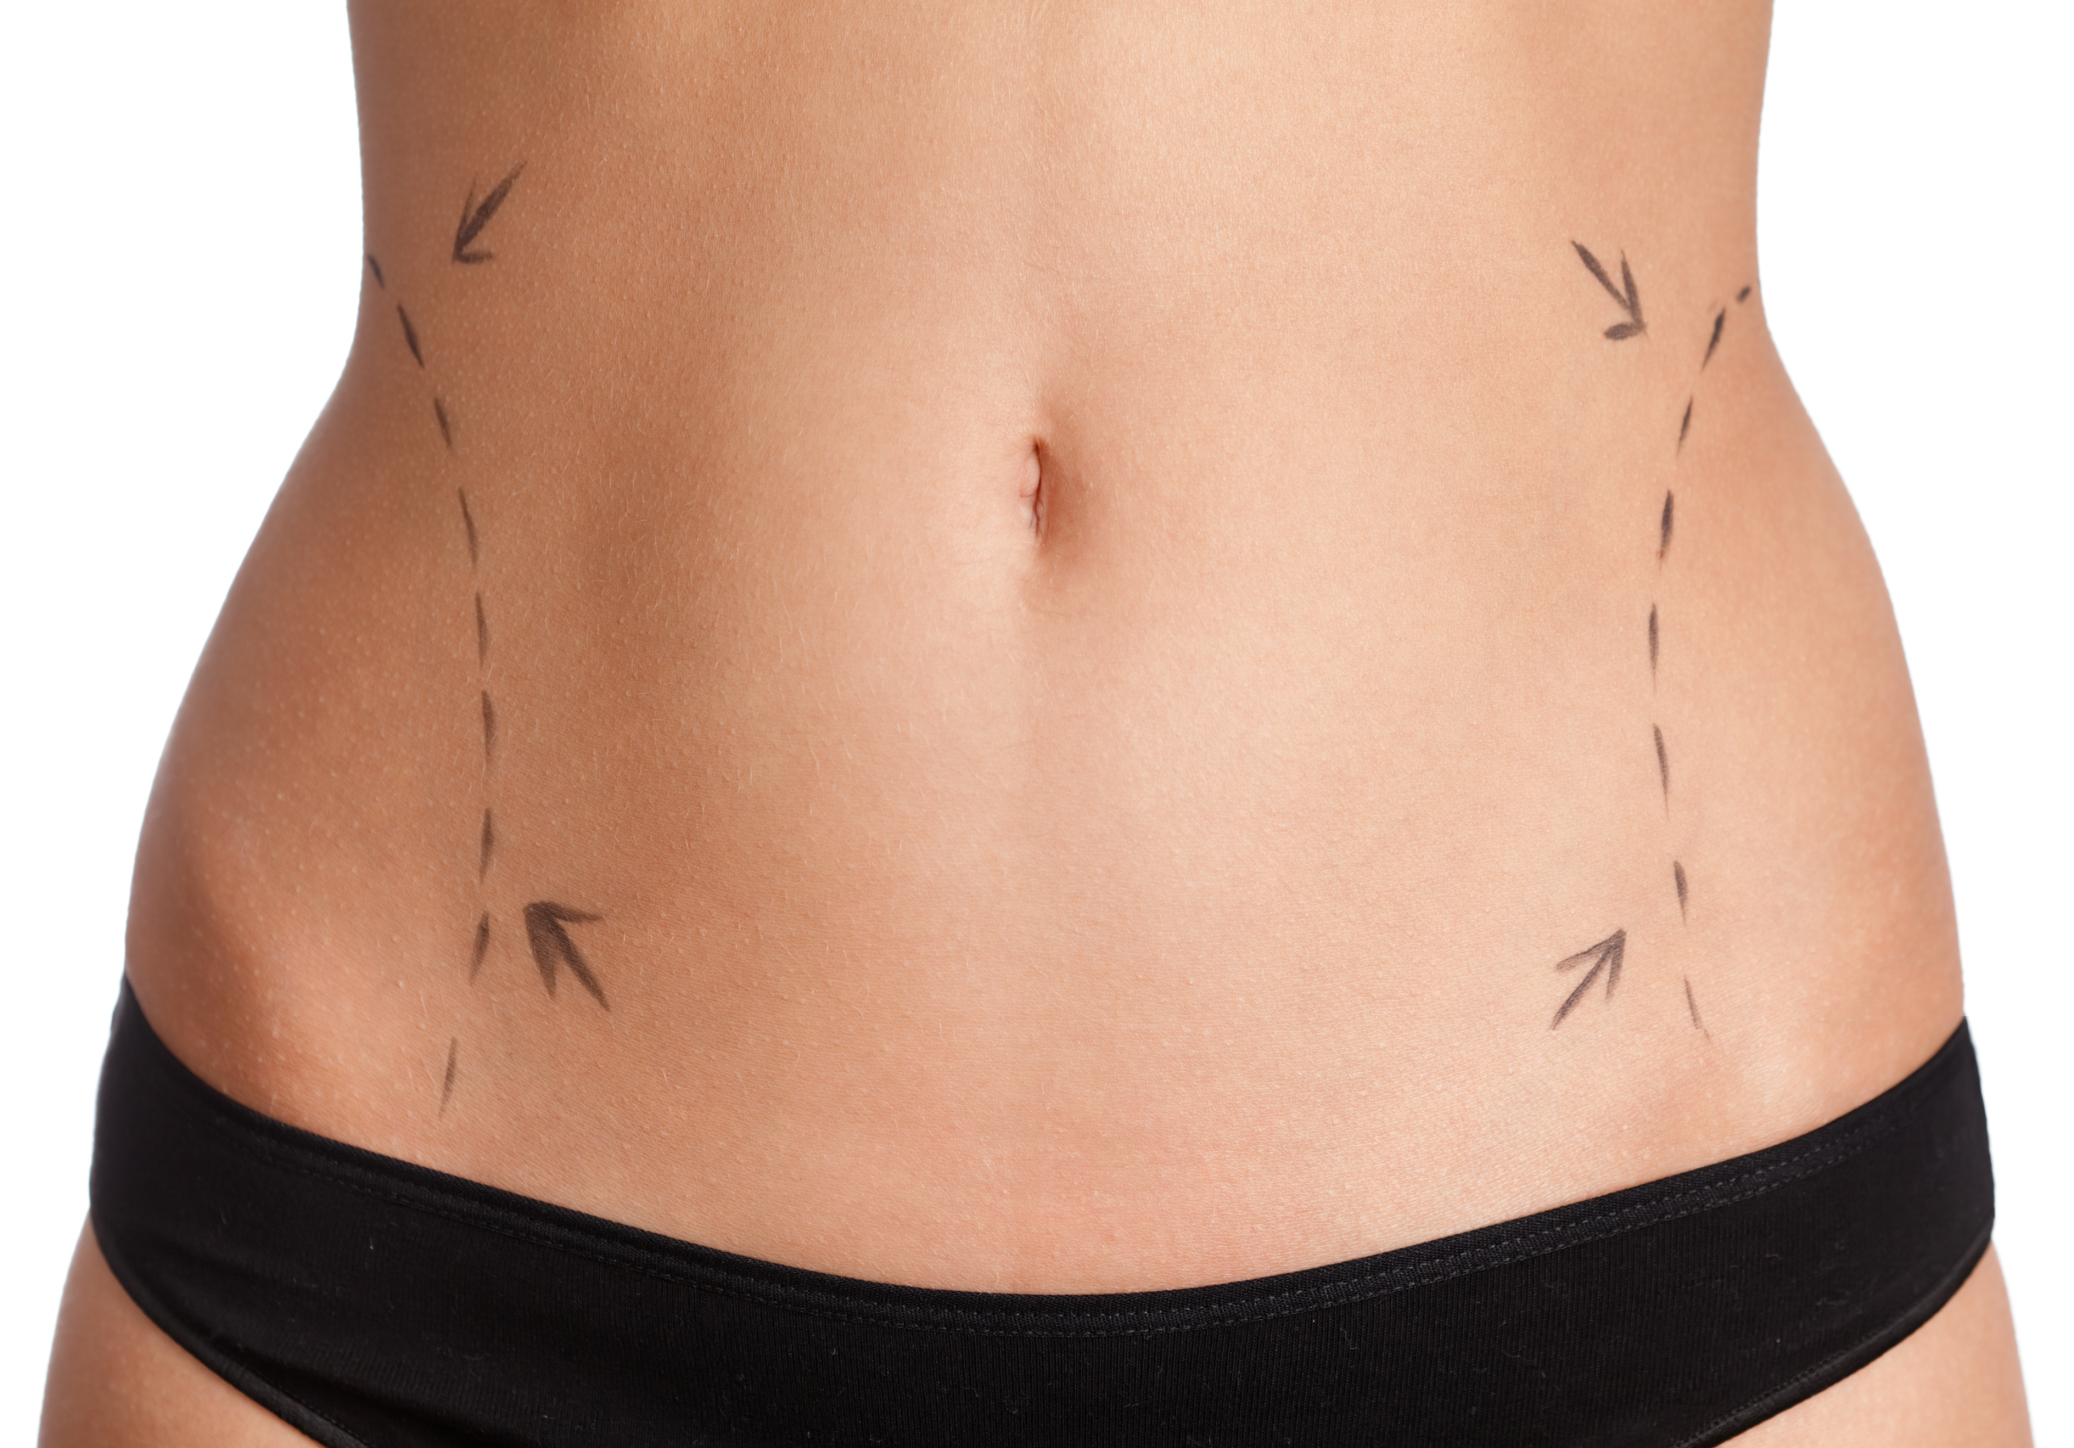 Liposuction For A Better Body